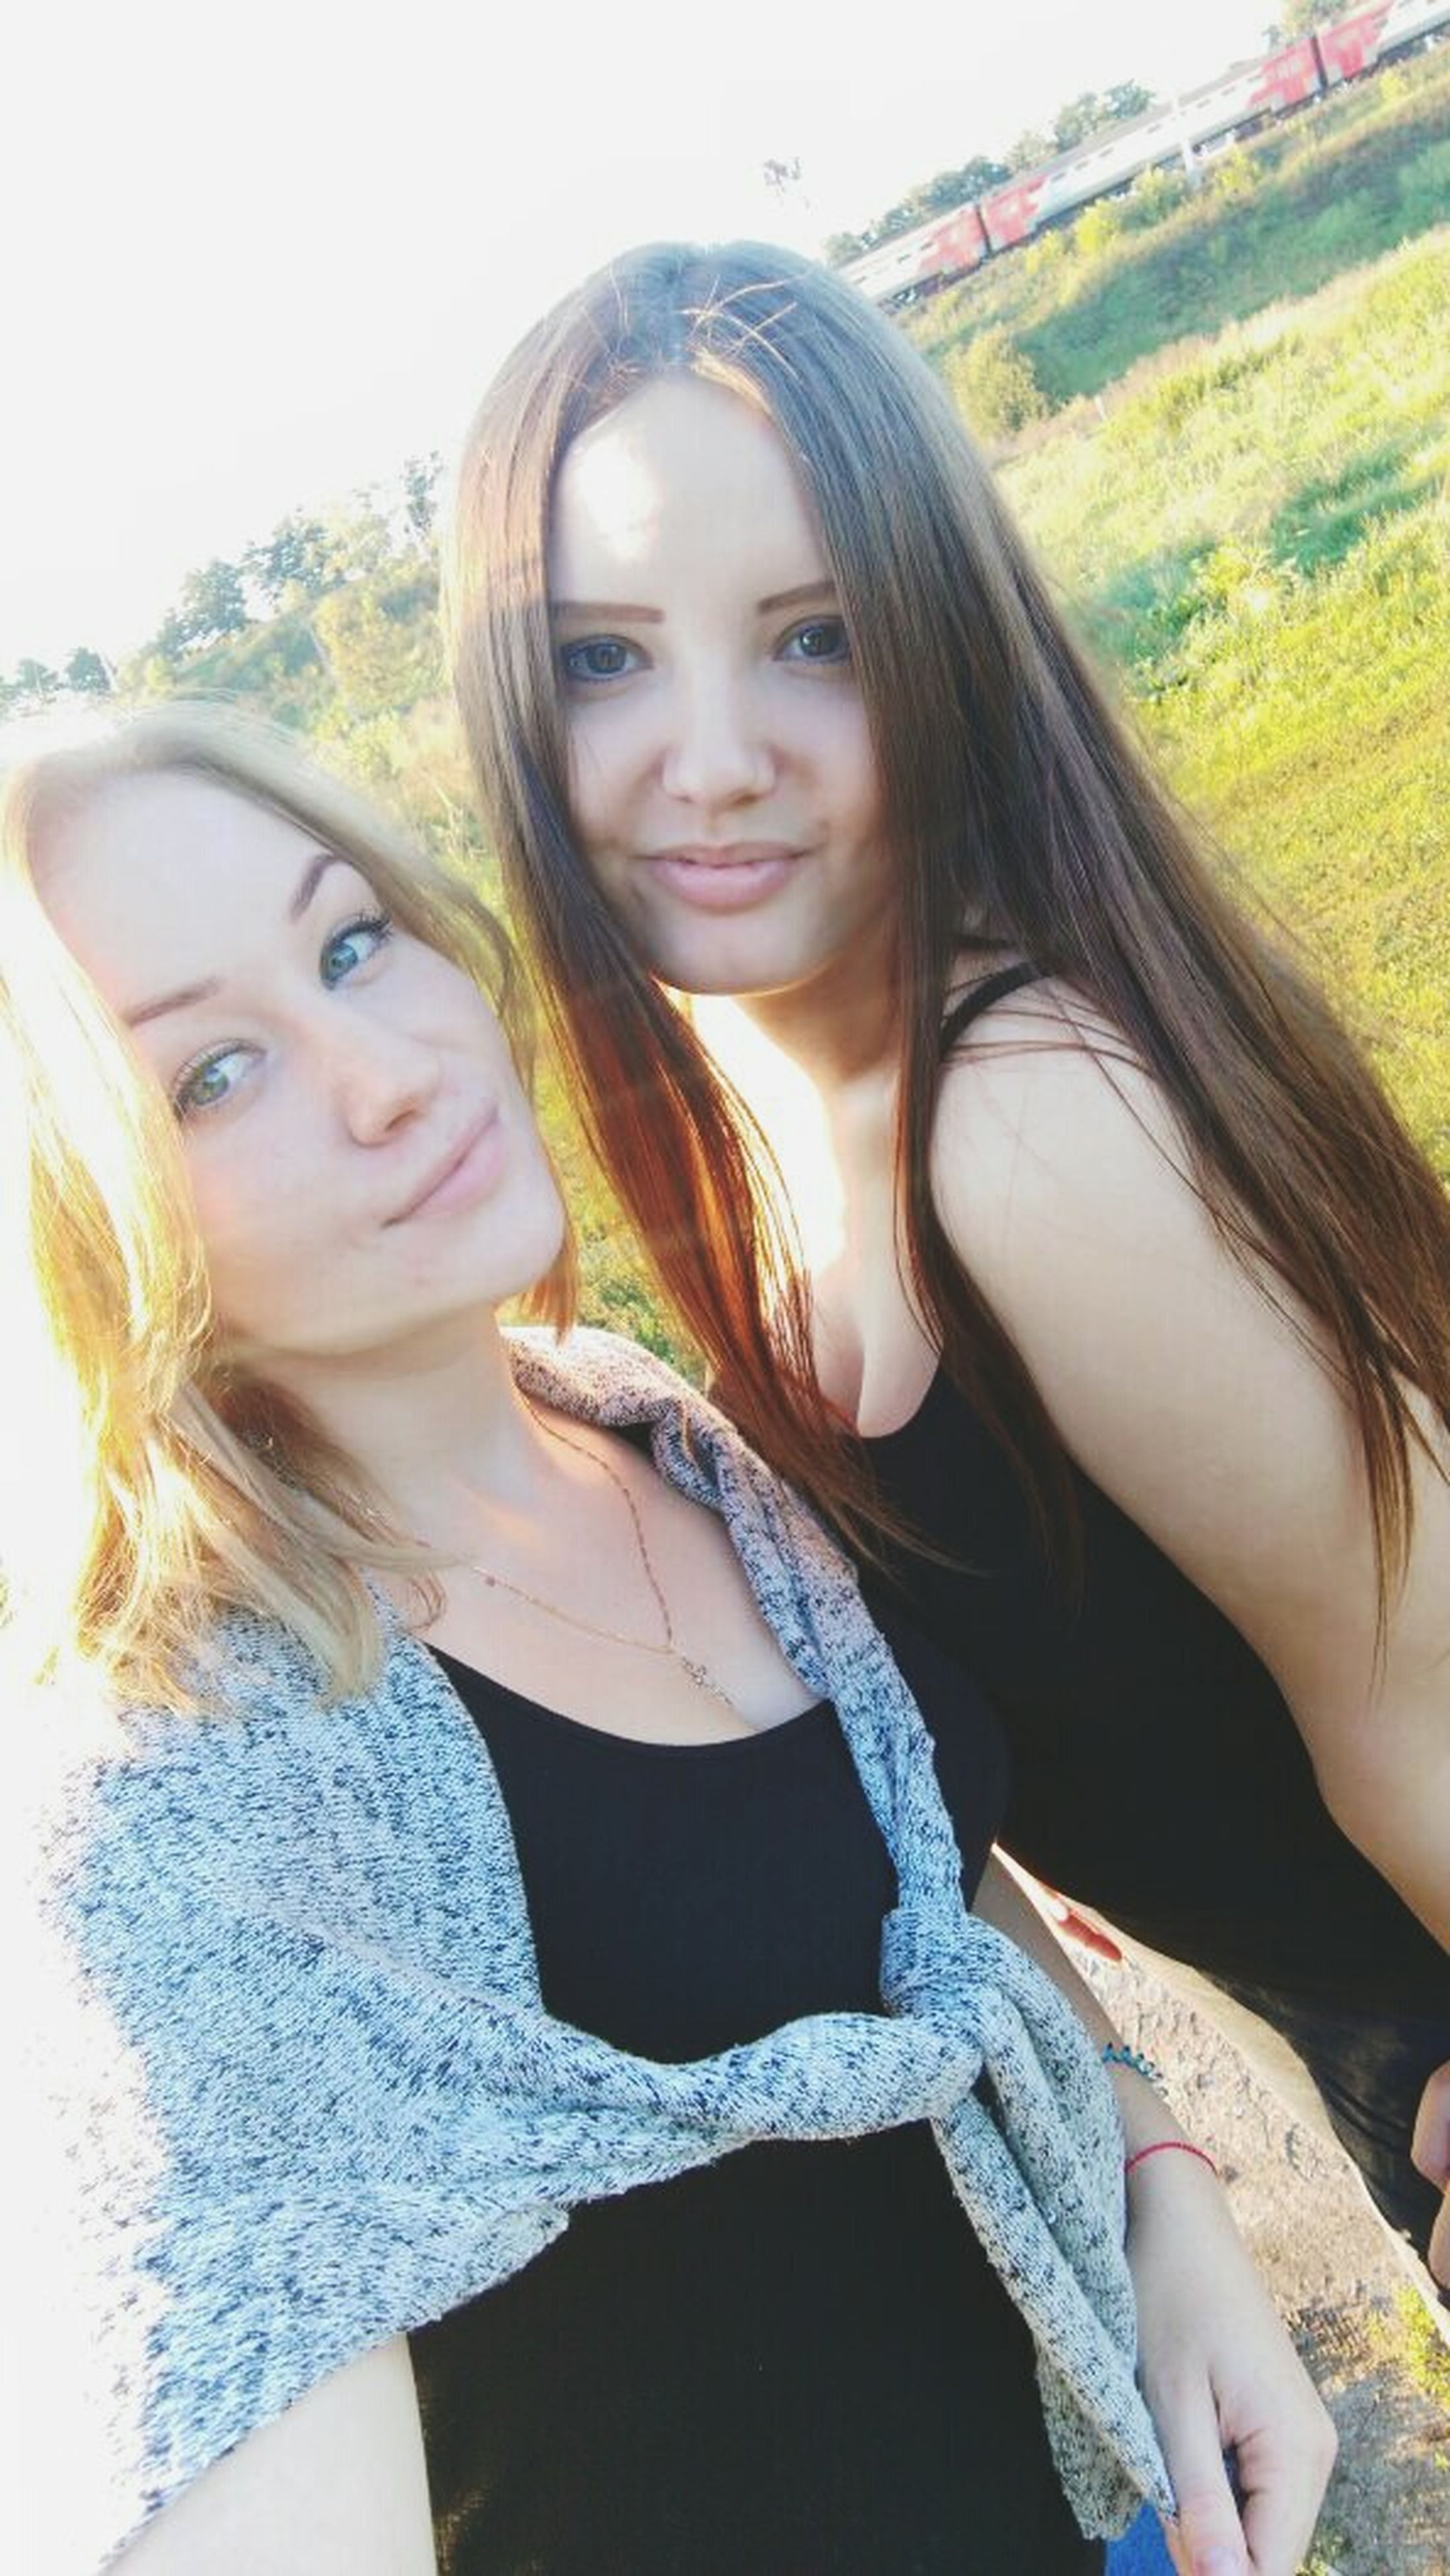 young women, long hair, leisure activity, smiling, portrait, young adult, person, lifestyles, front view, looking at camera, casual clothing, happiness, headshot, blond hair, beauty, day, outdoors